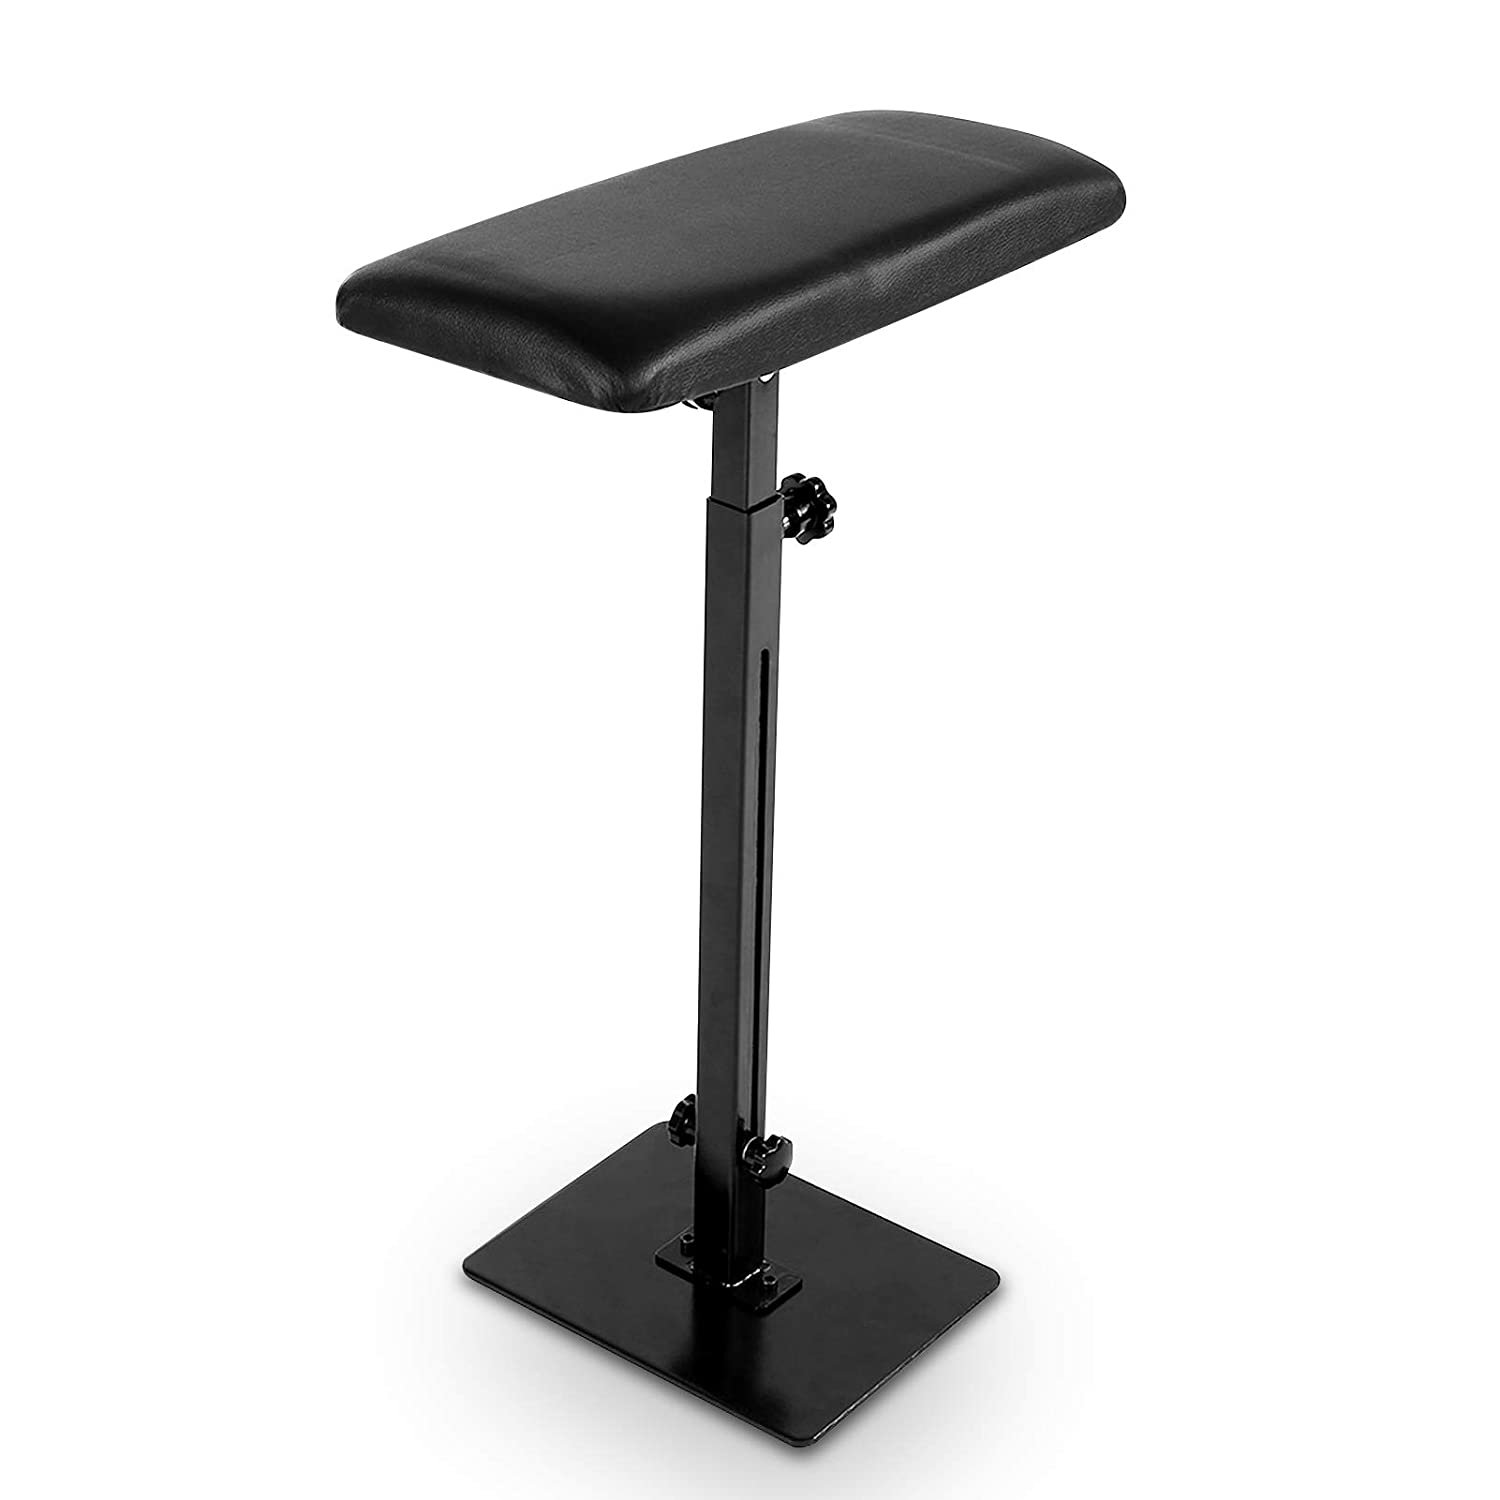 Professional 5 popular Tattoo Armrest and Stand Height Legrest Adjustable Max 59% OFF